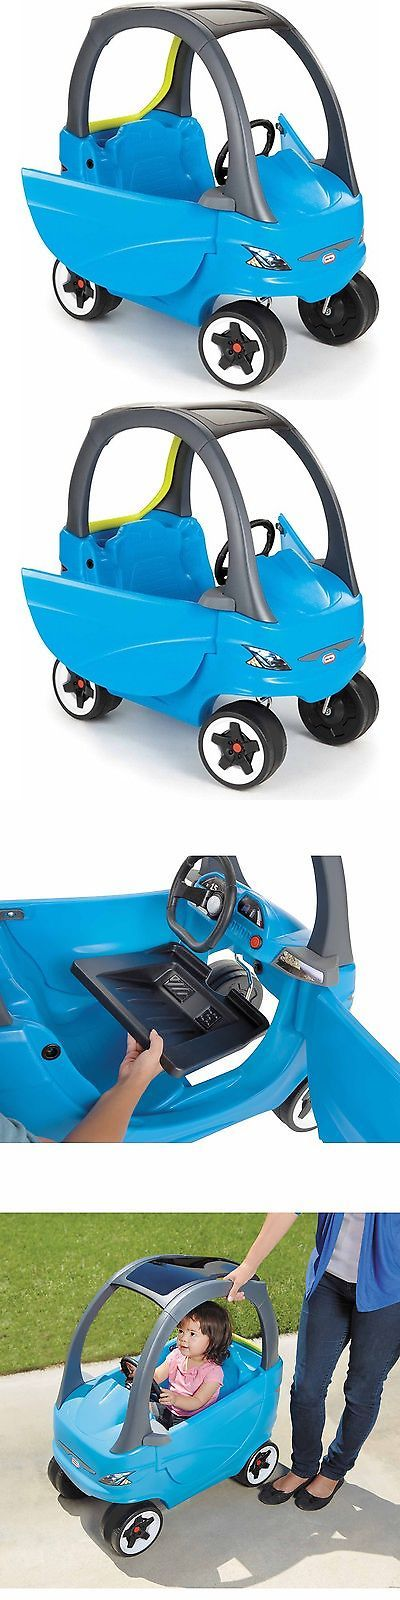 1970-Now 11746: Little Tikes Cozy Coupe Police Car Lil Kids Ride On Sport Race Car Toys For Kids -> BUY IT NOW ONLY: $62.9 on eBay!